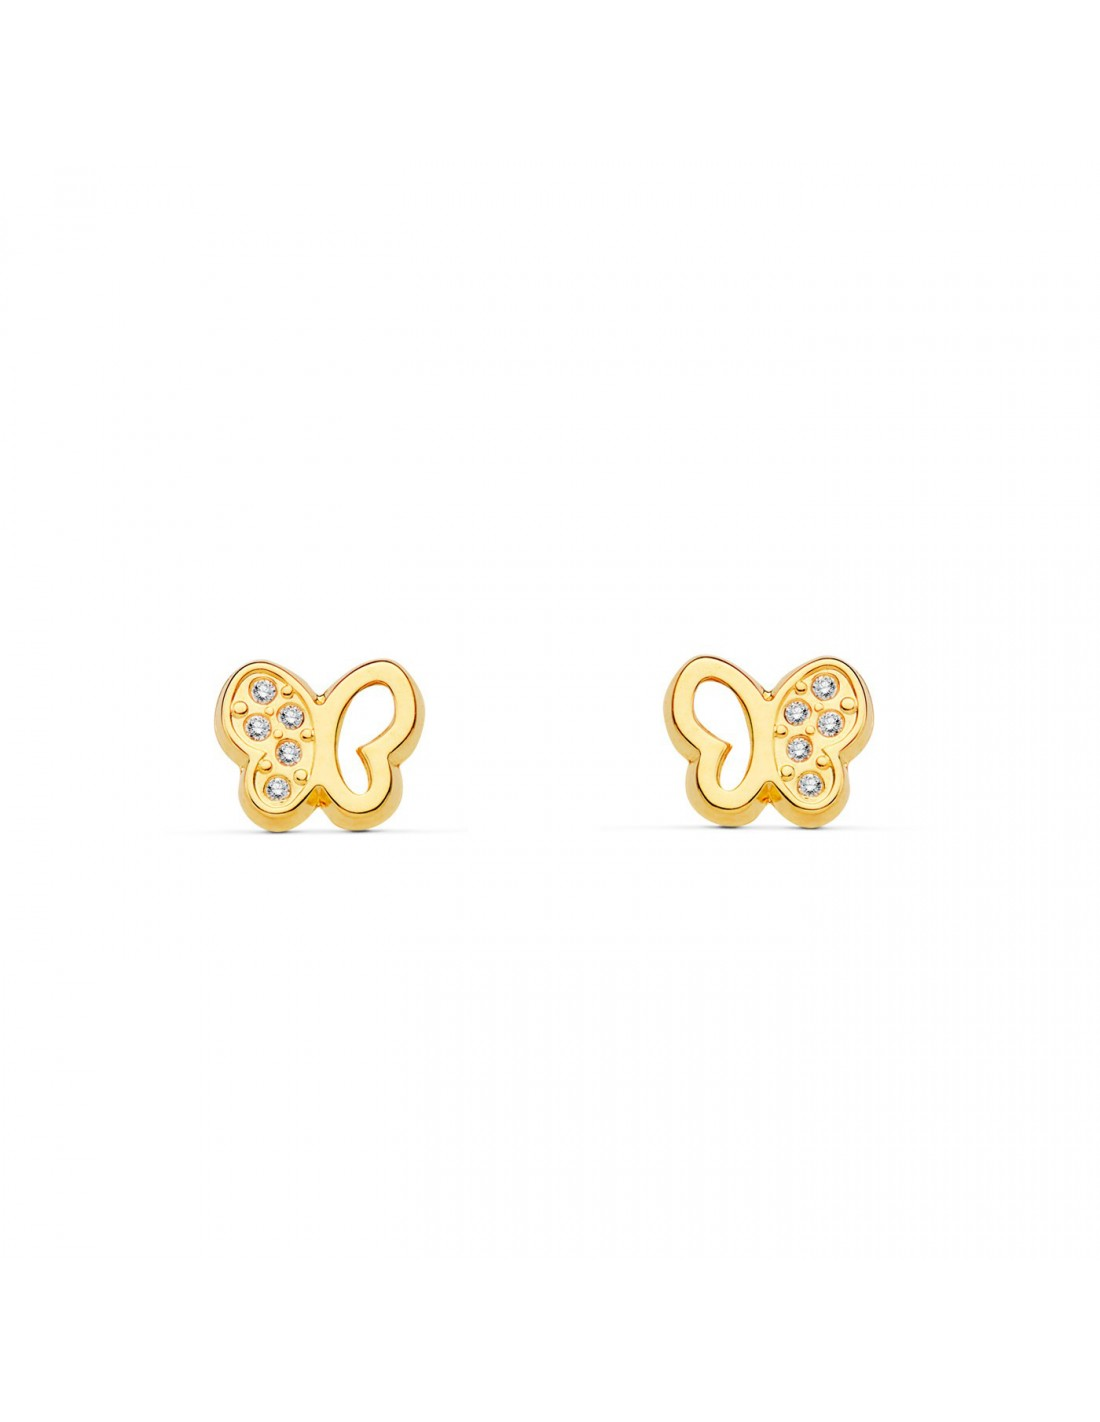 boucles d 39 oreilles enfant papillon or jaune 9 carats. Black Bedroom Furniture Sets. Home Design Ideas